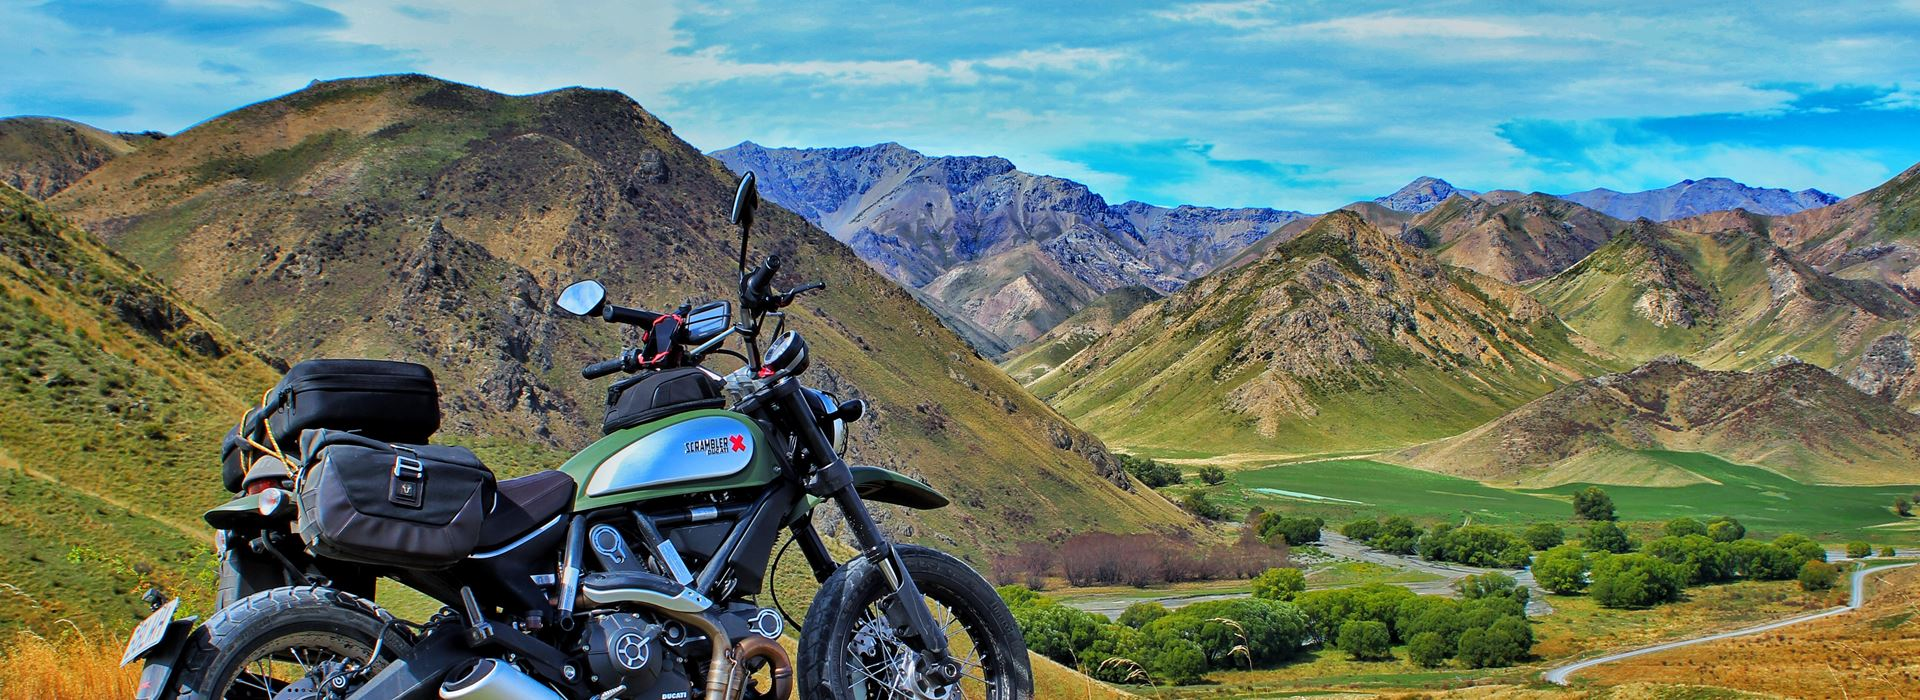 8 Day - Guided Motorbike Adventure